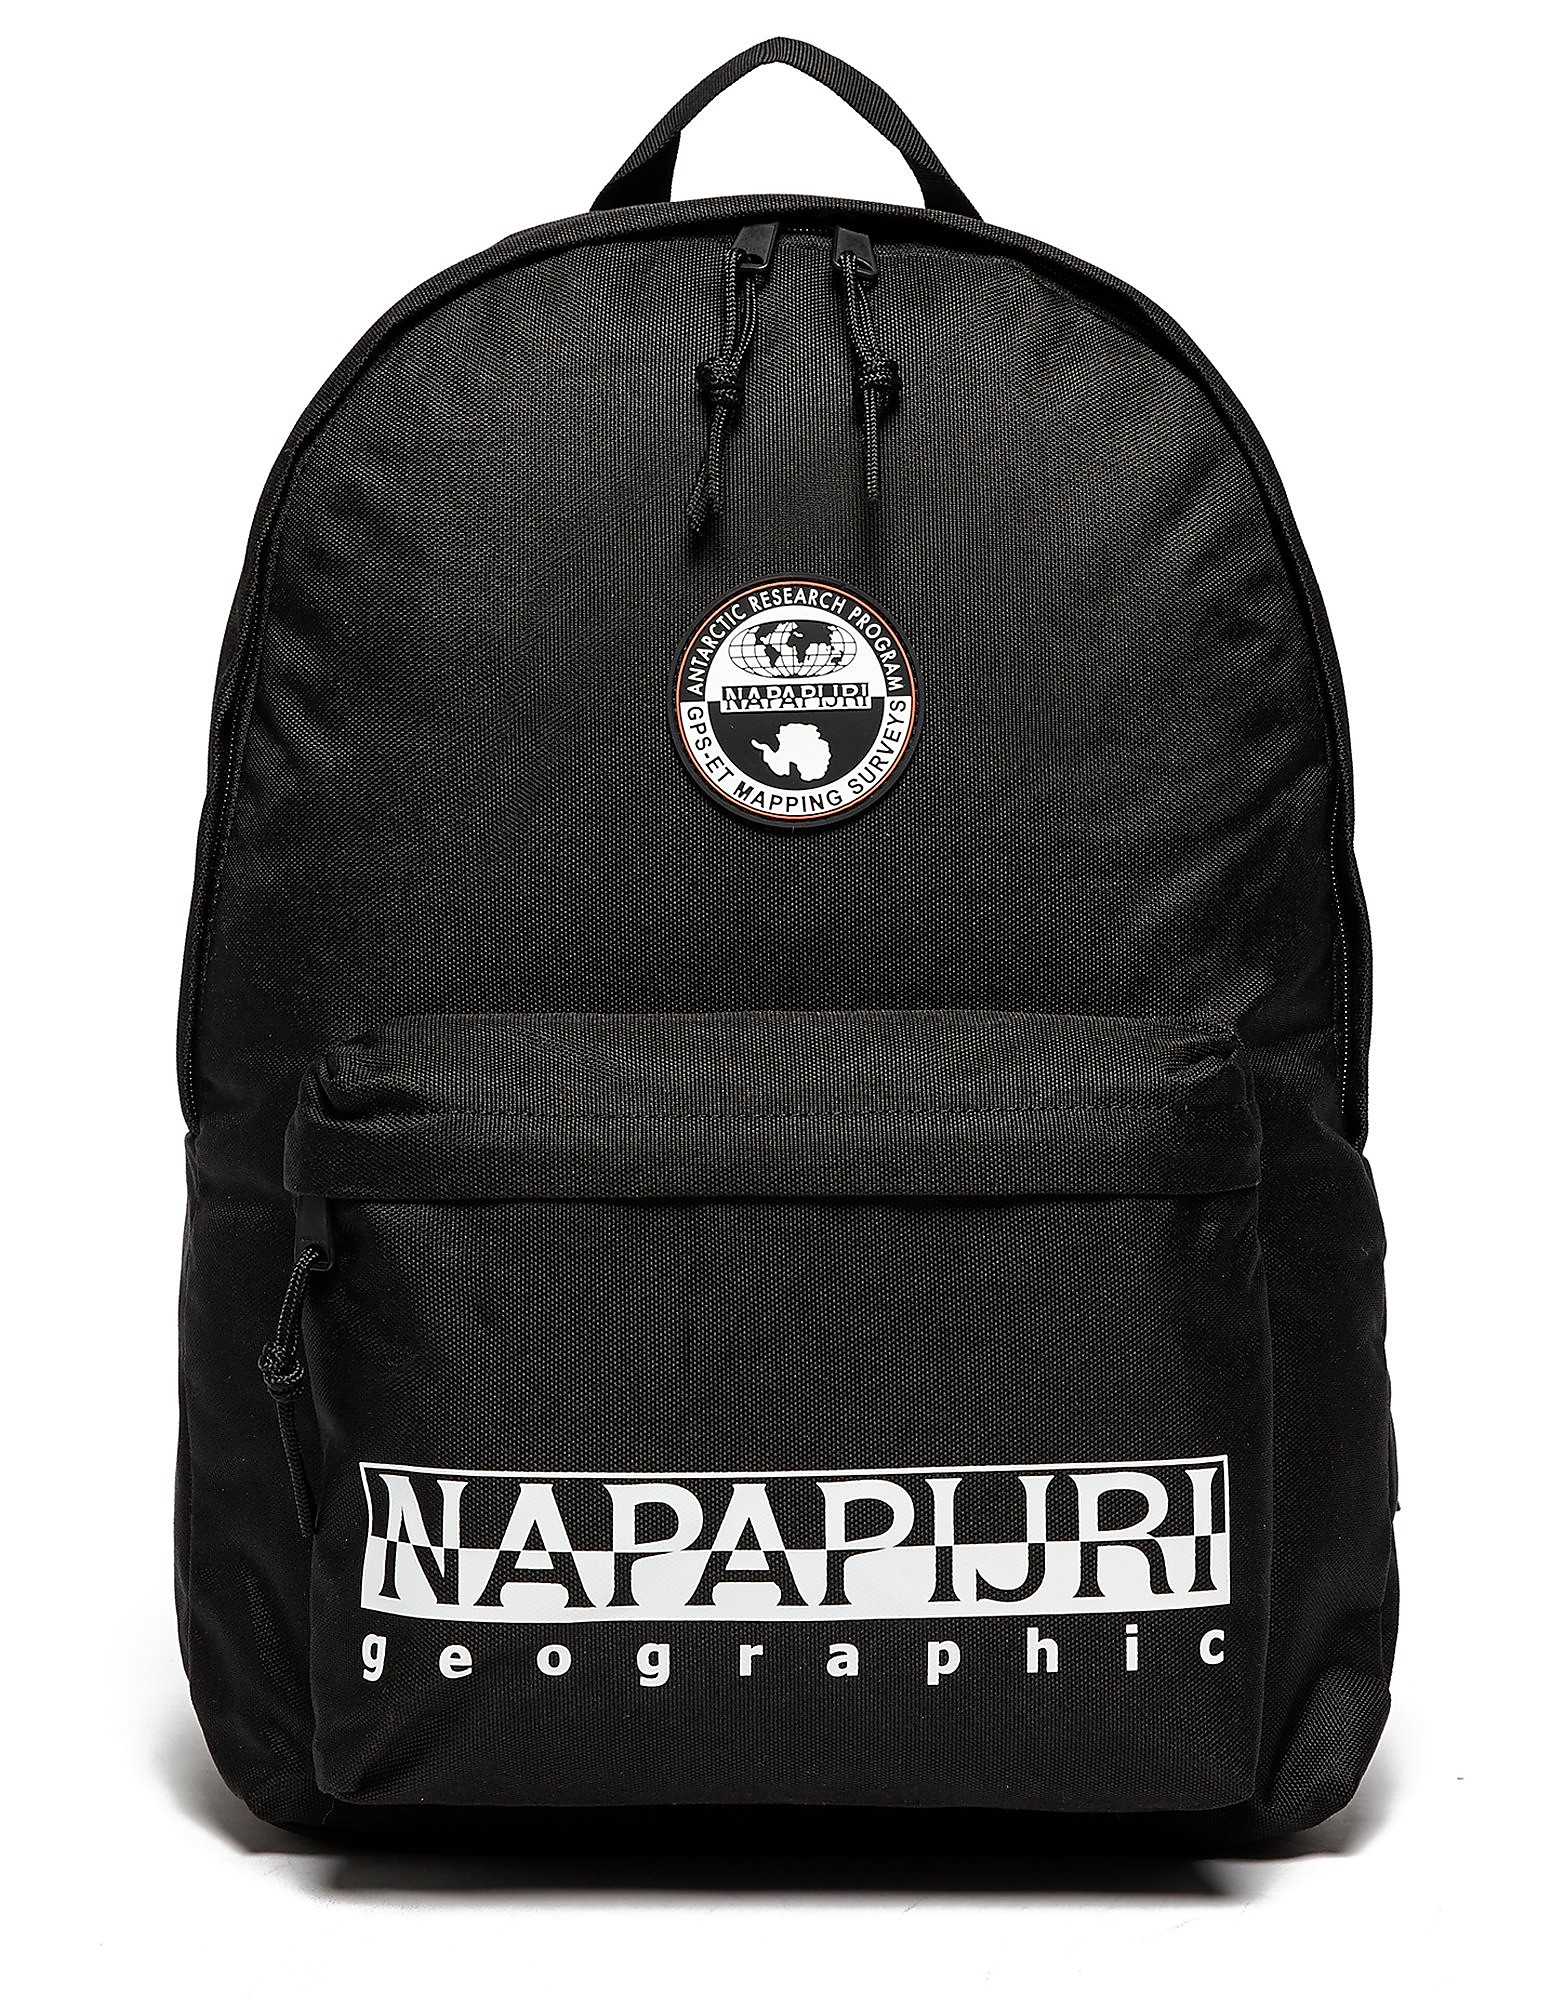 Napapijri Happy Backpack